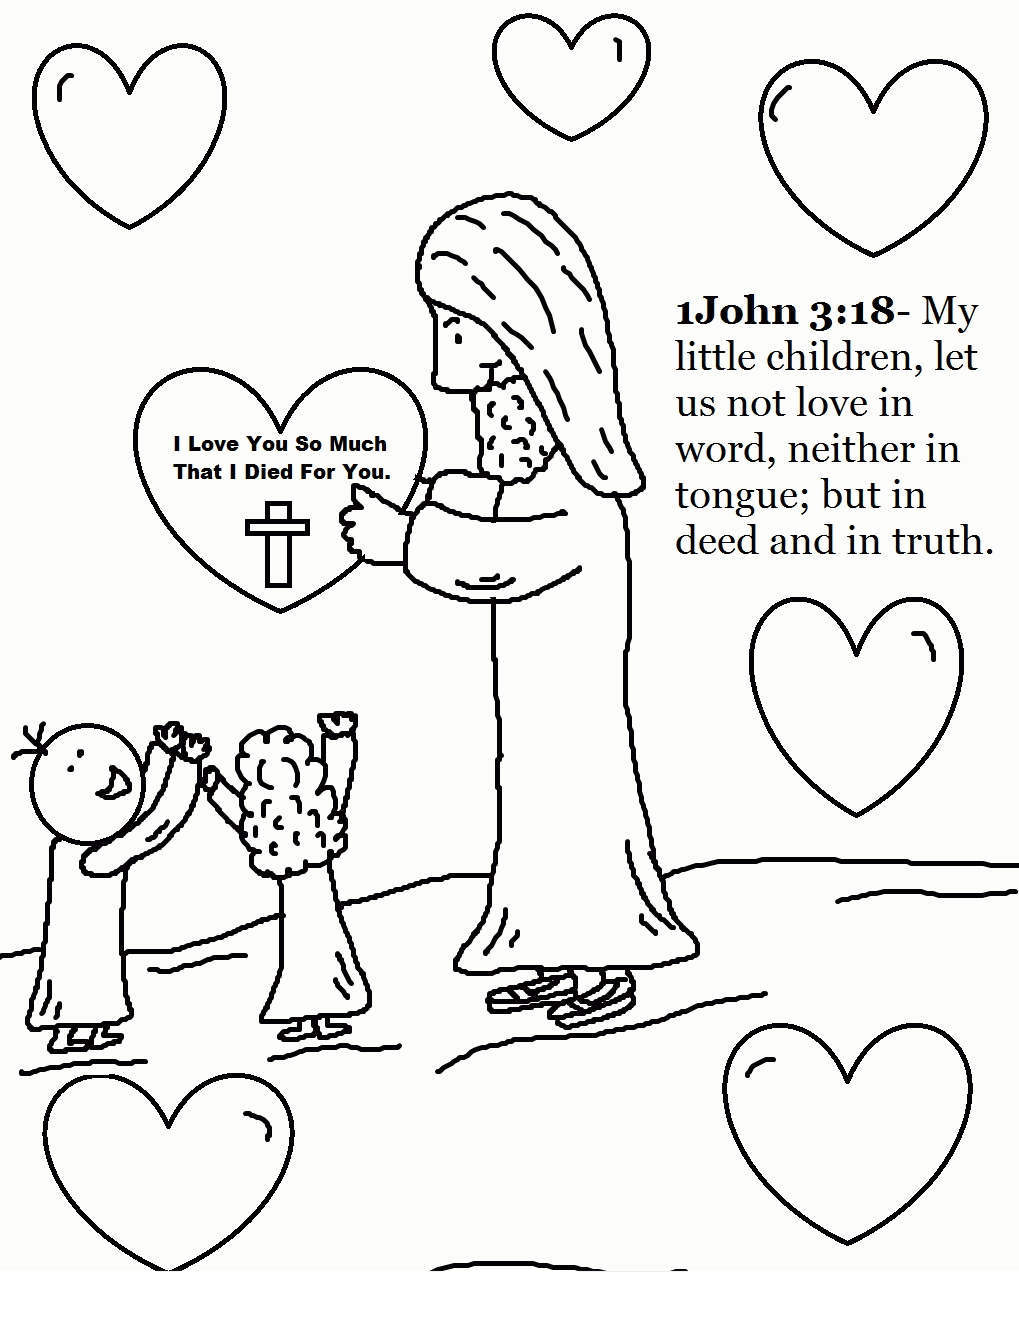 Jesus Loves Me Coloring Pages Sheet Gallery for Boys - Free ...